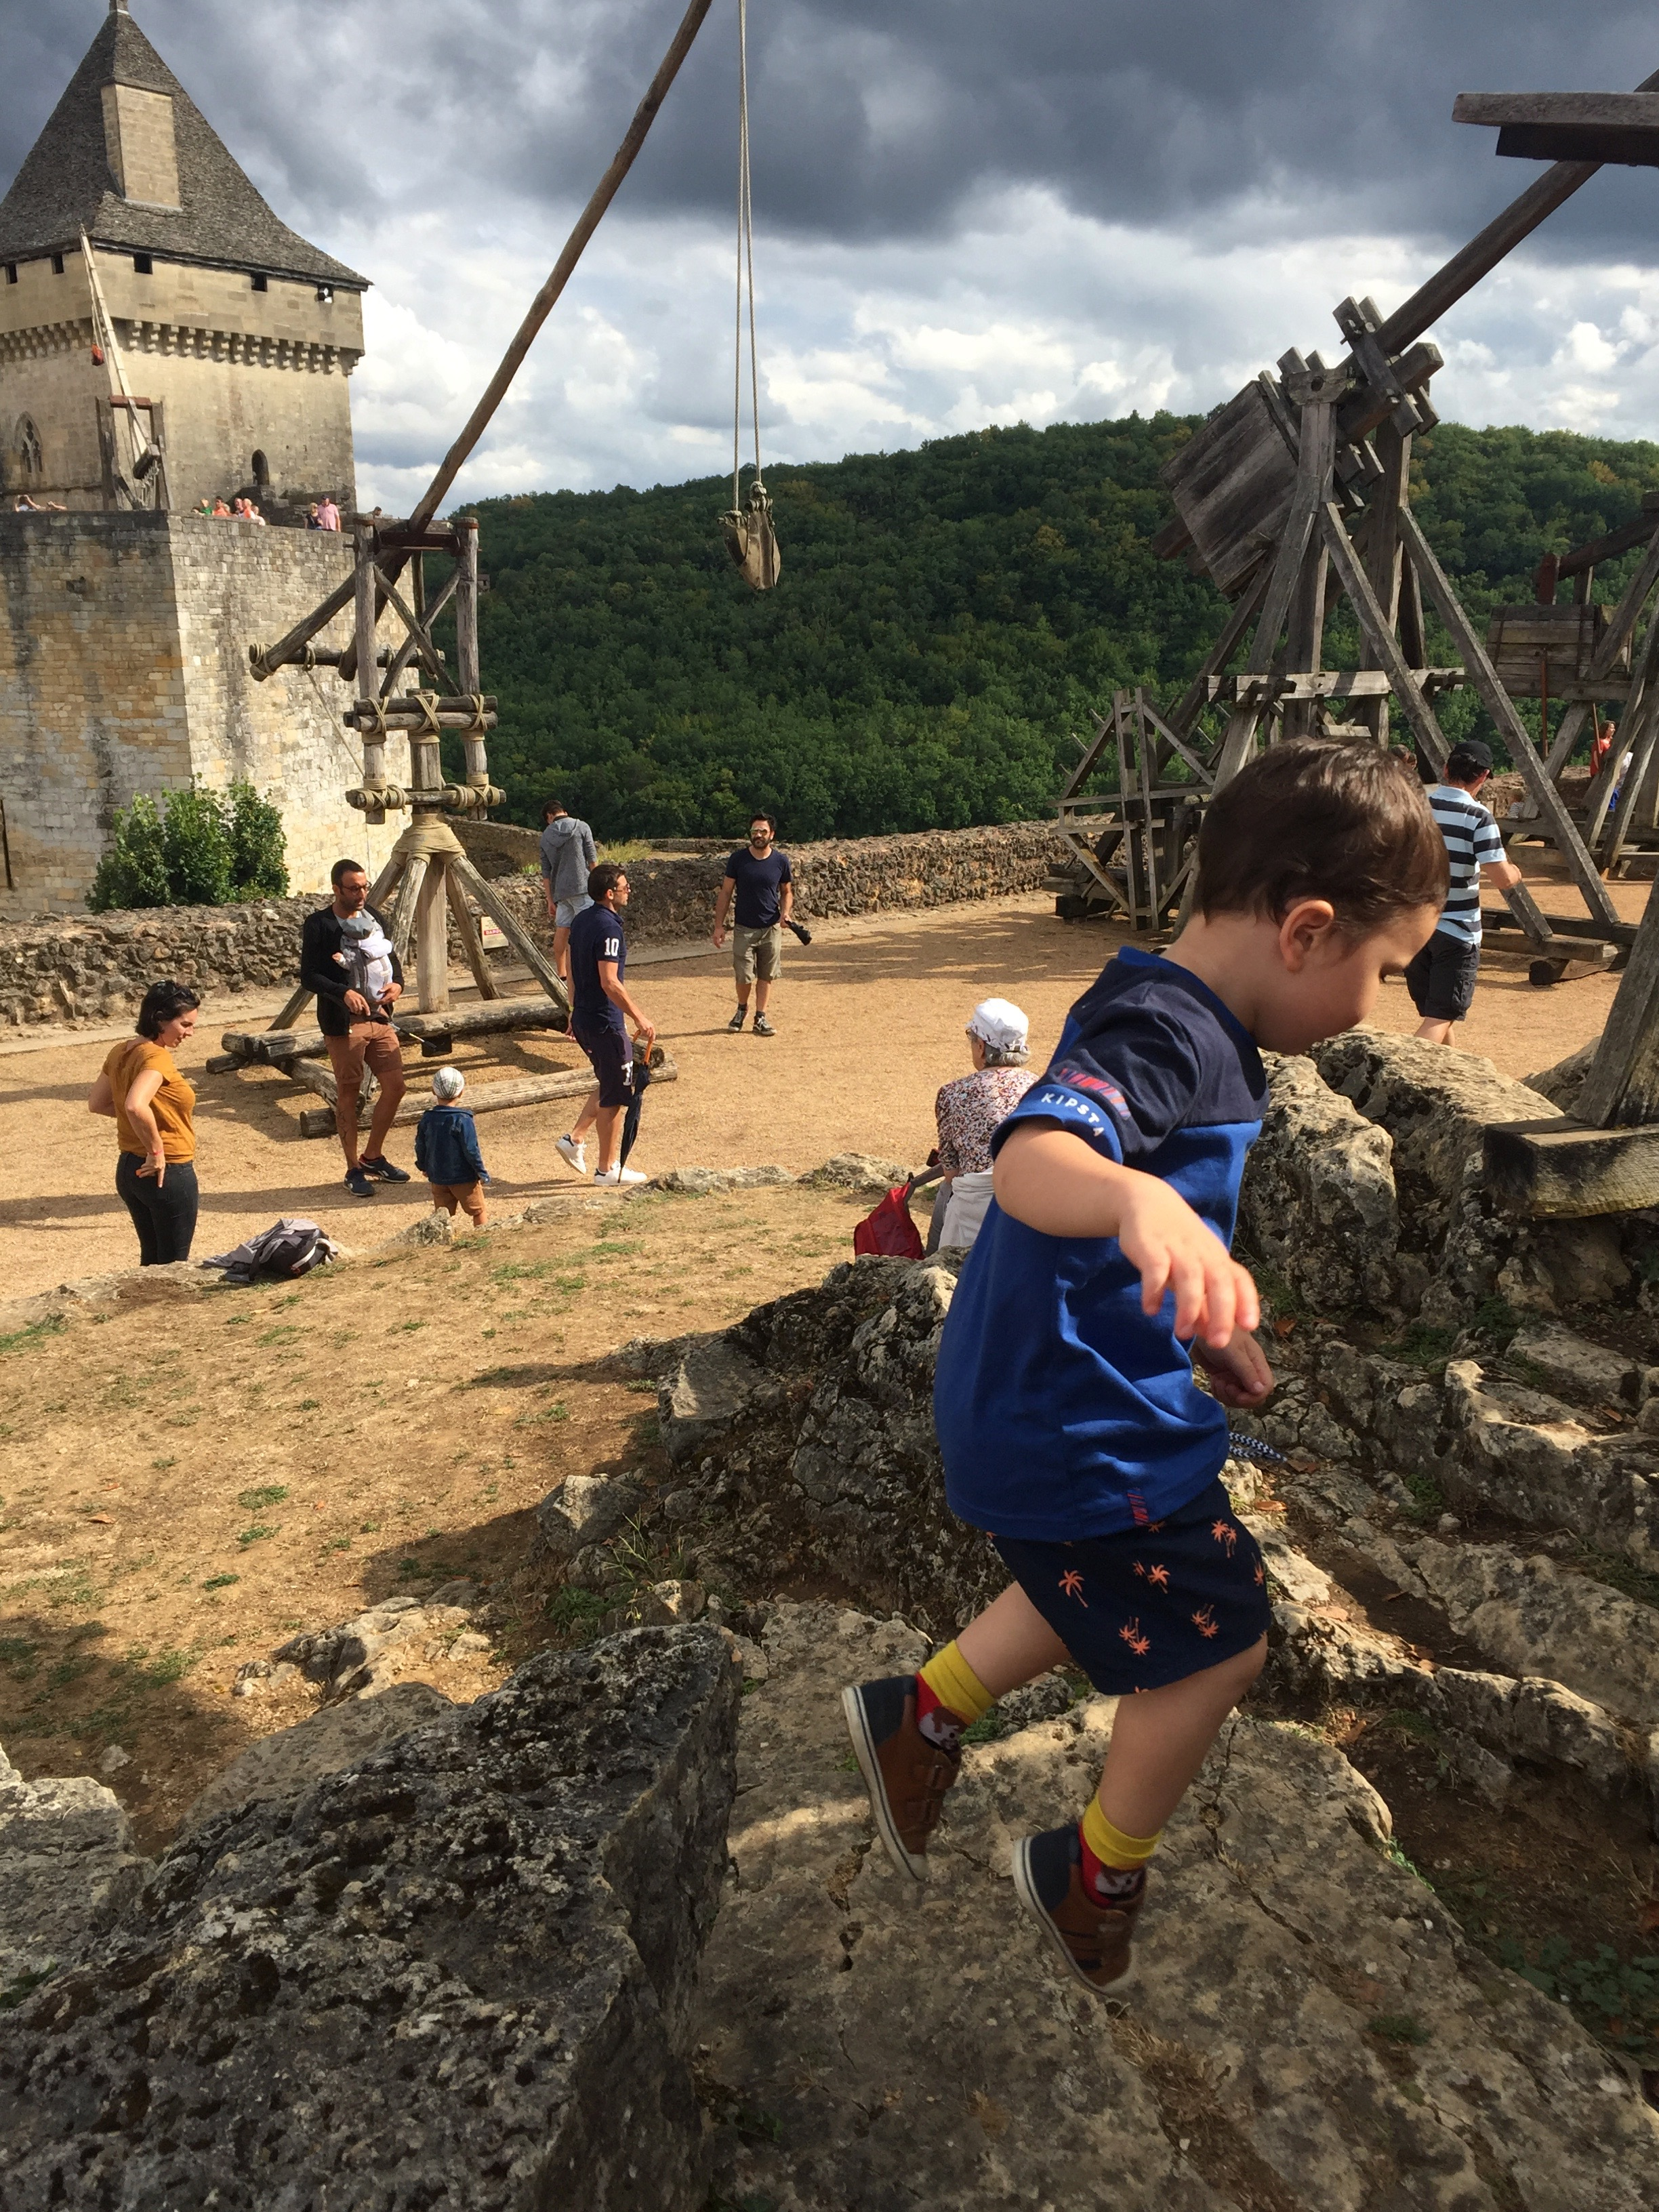 Jumping over a trebuchet at Le Chateau de Castelnaud